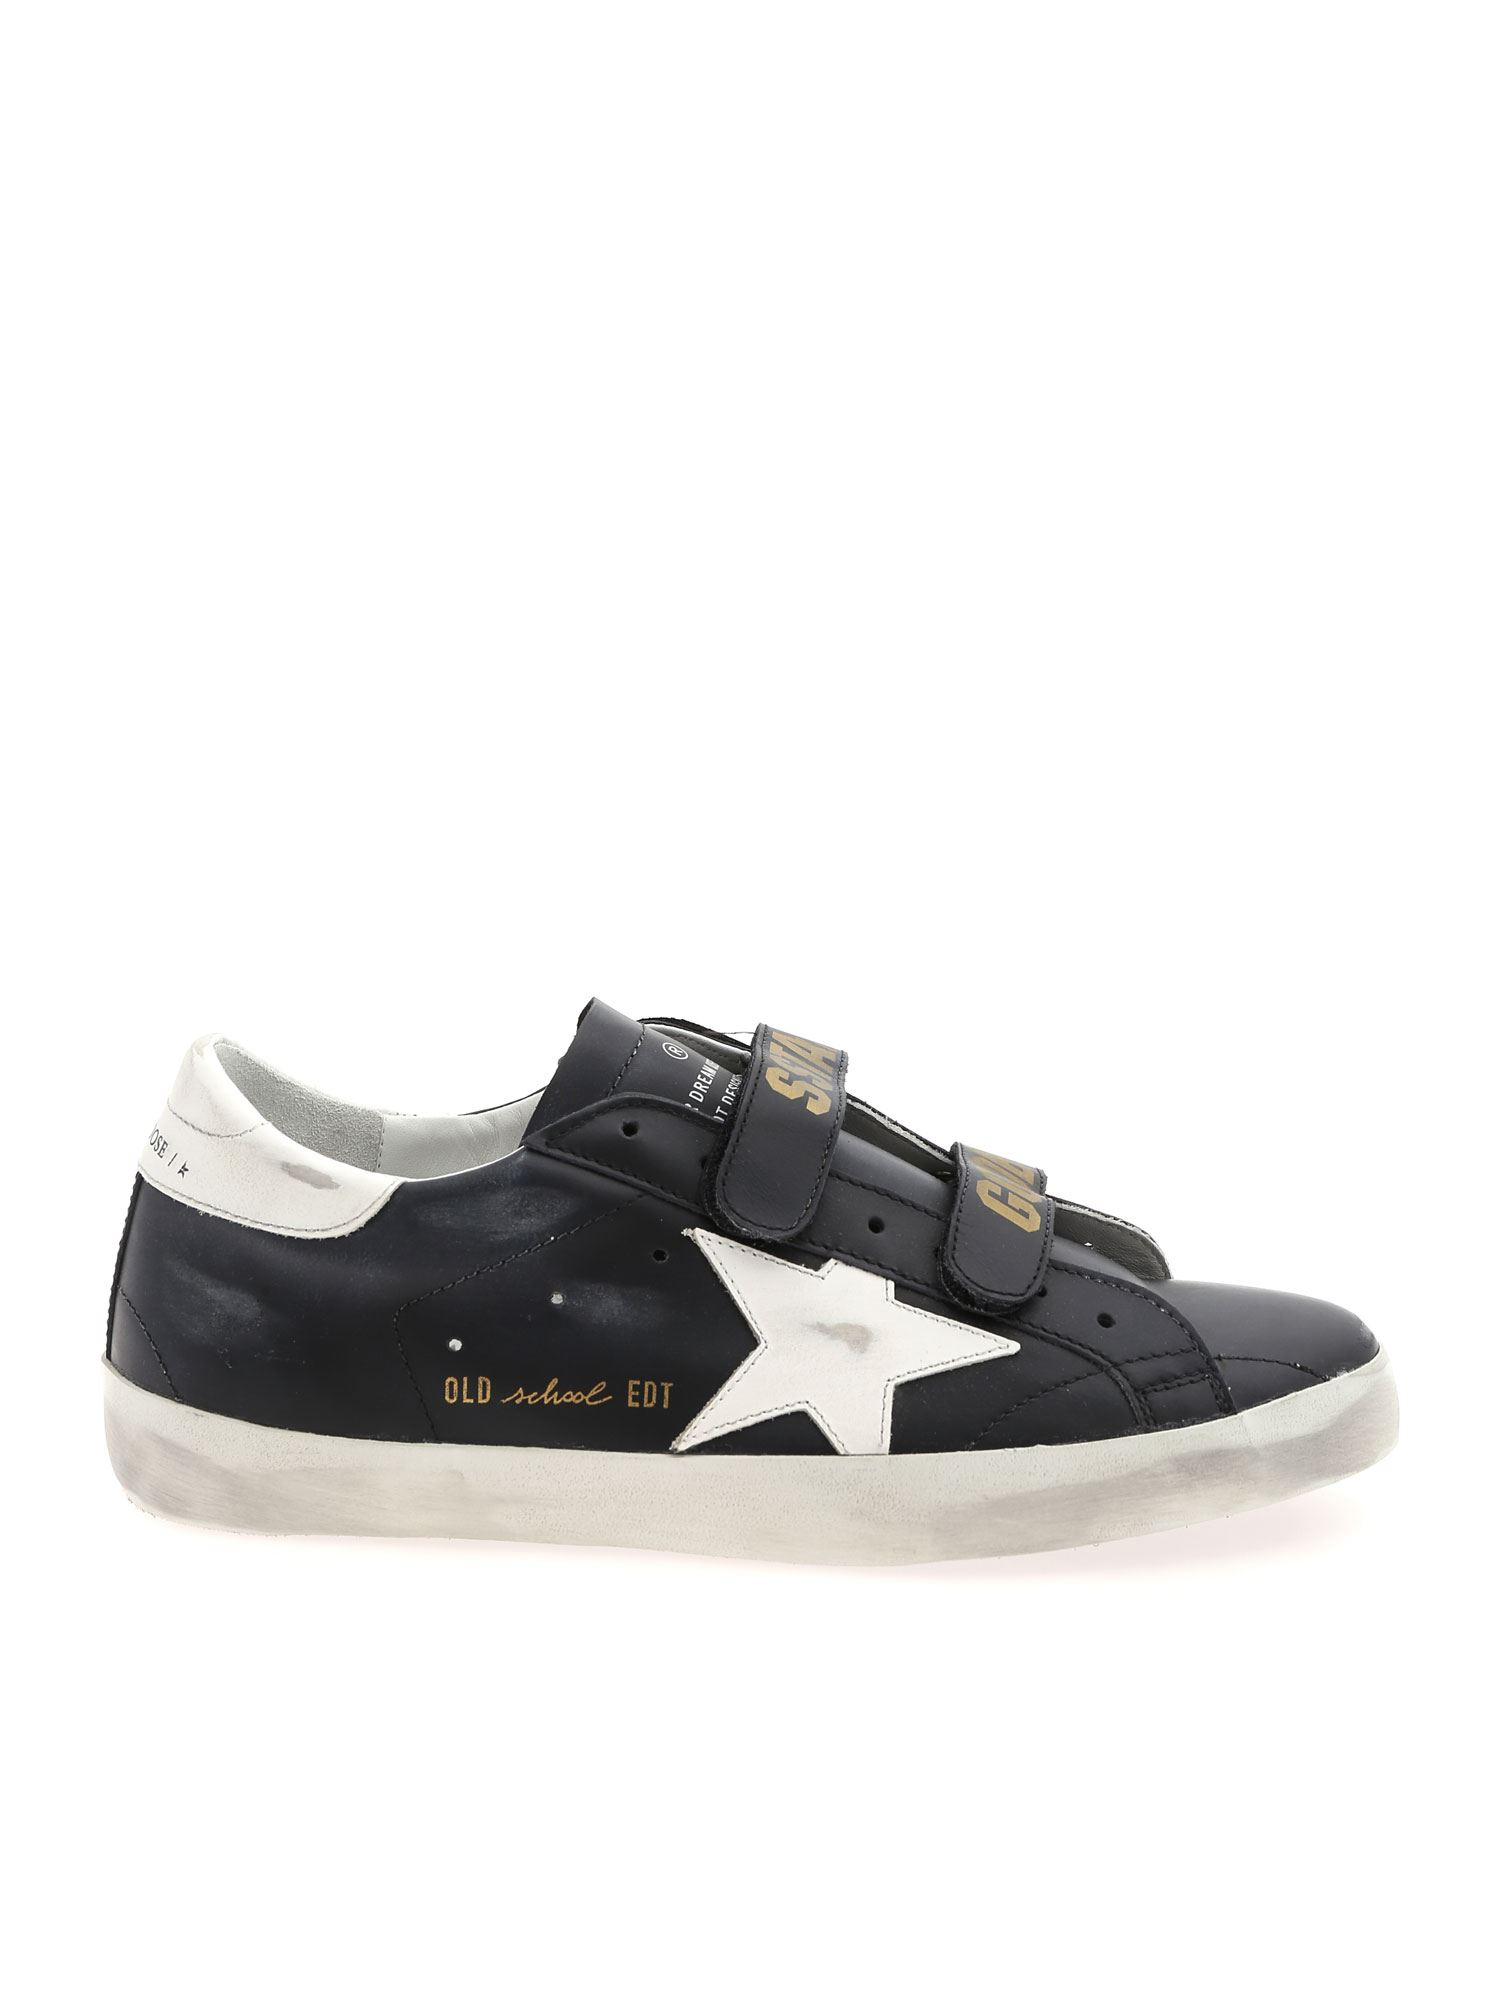 Golden Goose Leathers OLD SCHOOL BLACK SNEAKERS WITH WHITE STAR